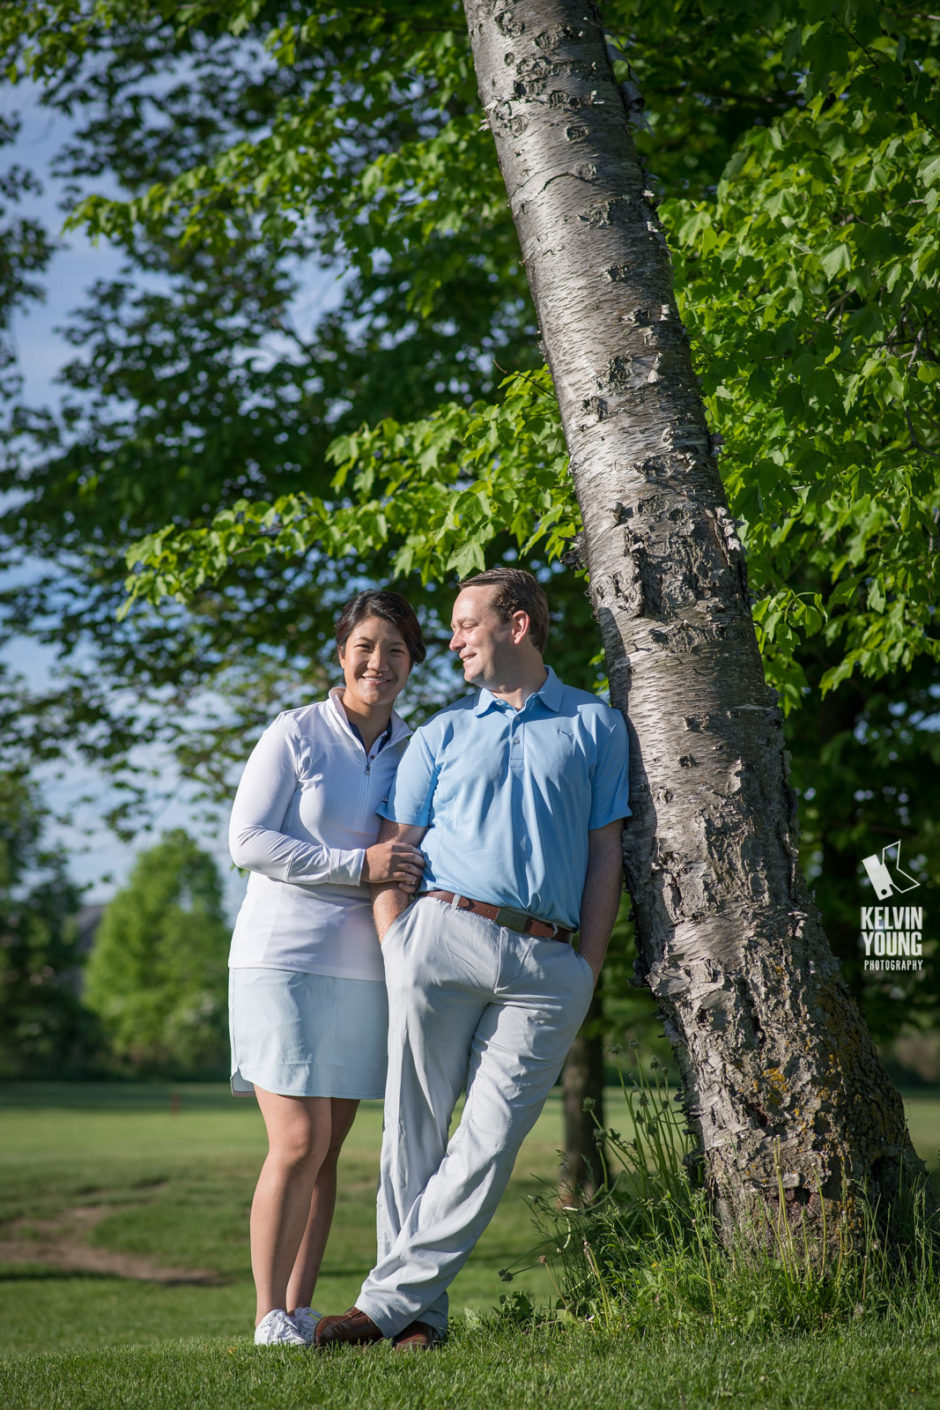 KYP16-Sabrina_Chris_Golf_Course_Engagement-002